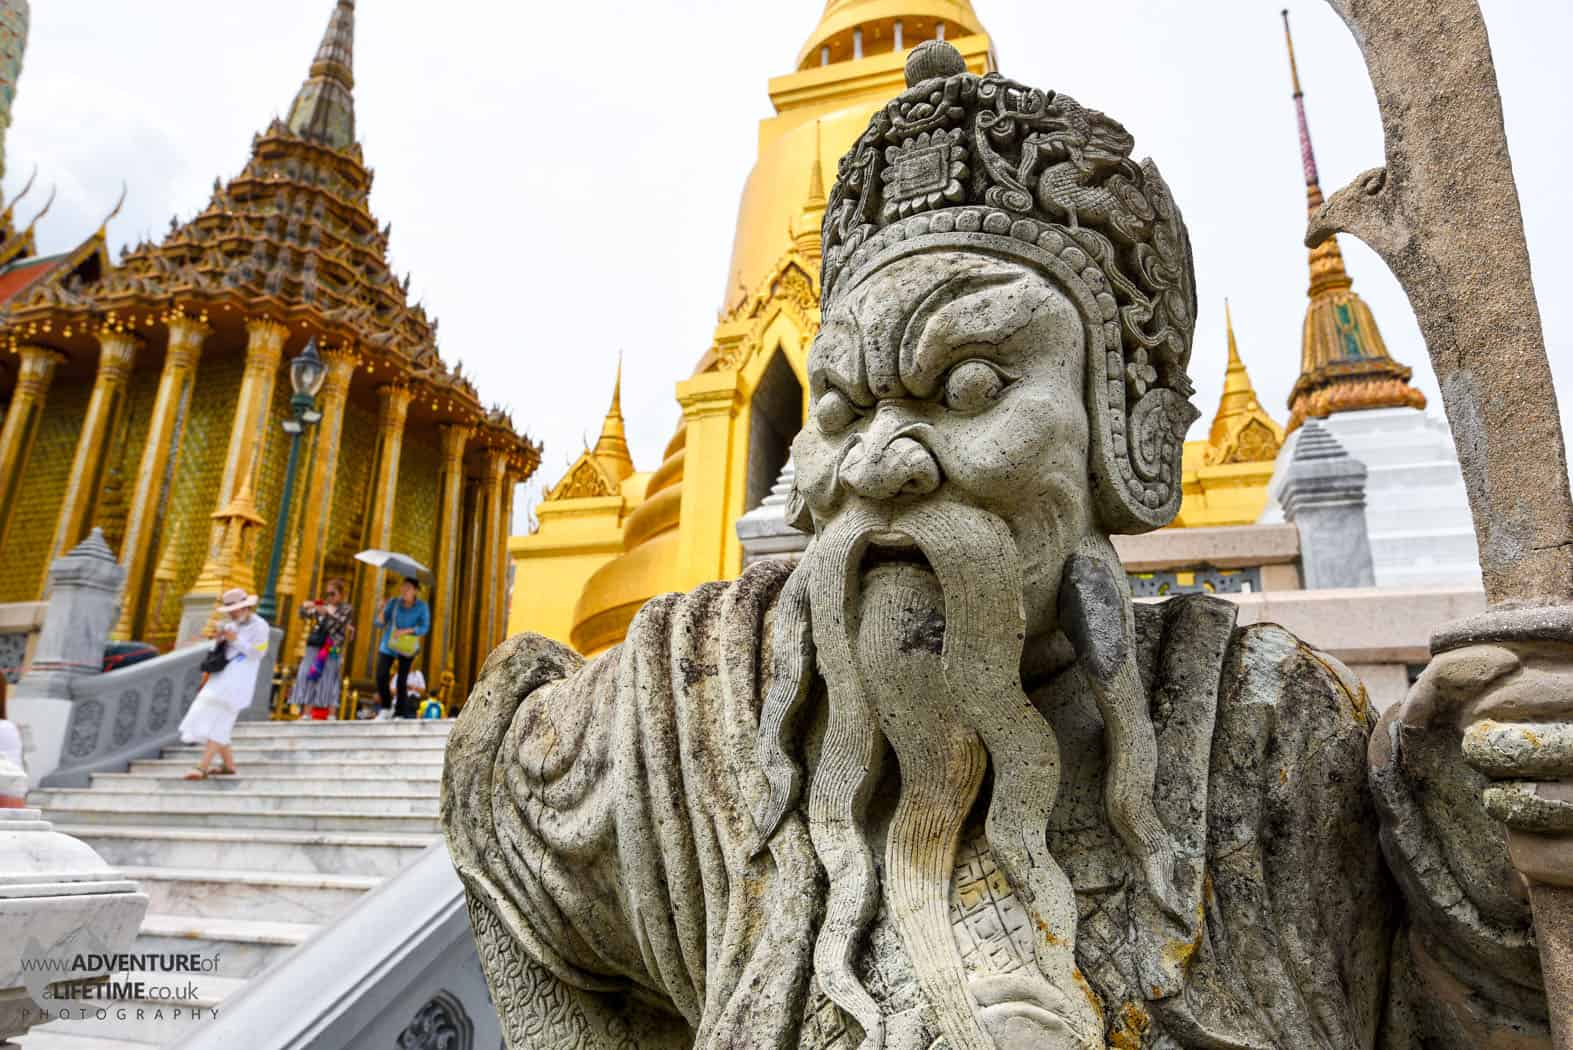 The Grand Palace Stone Statue